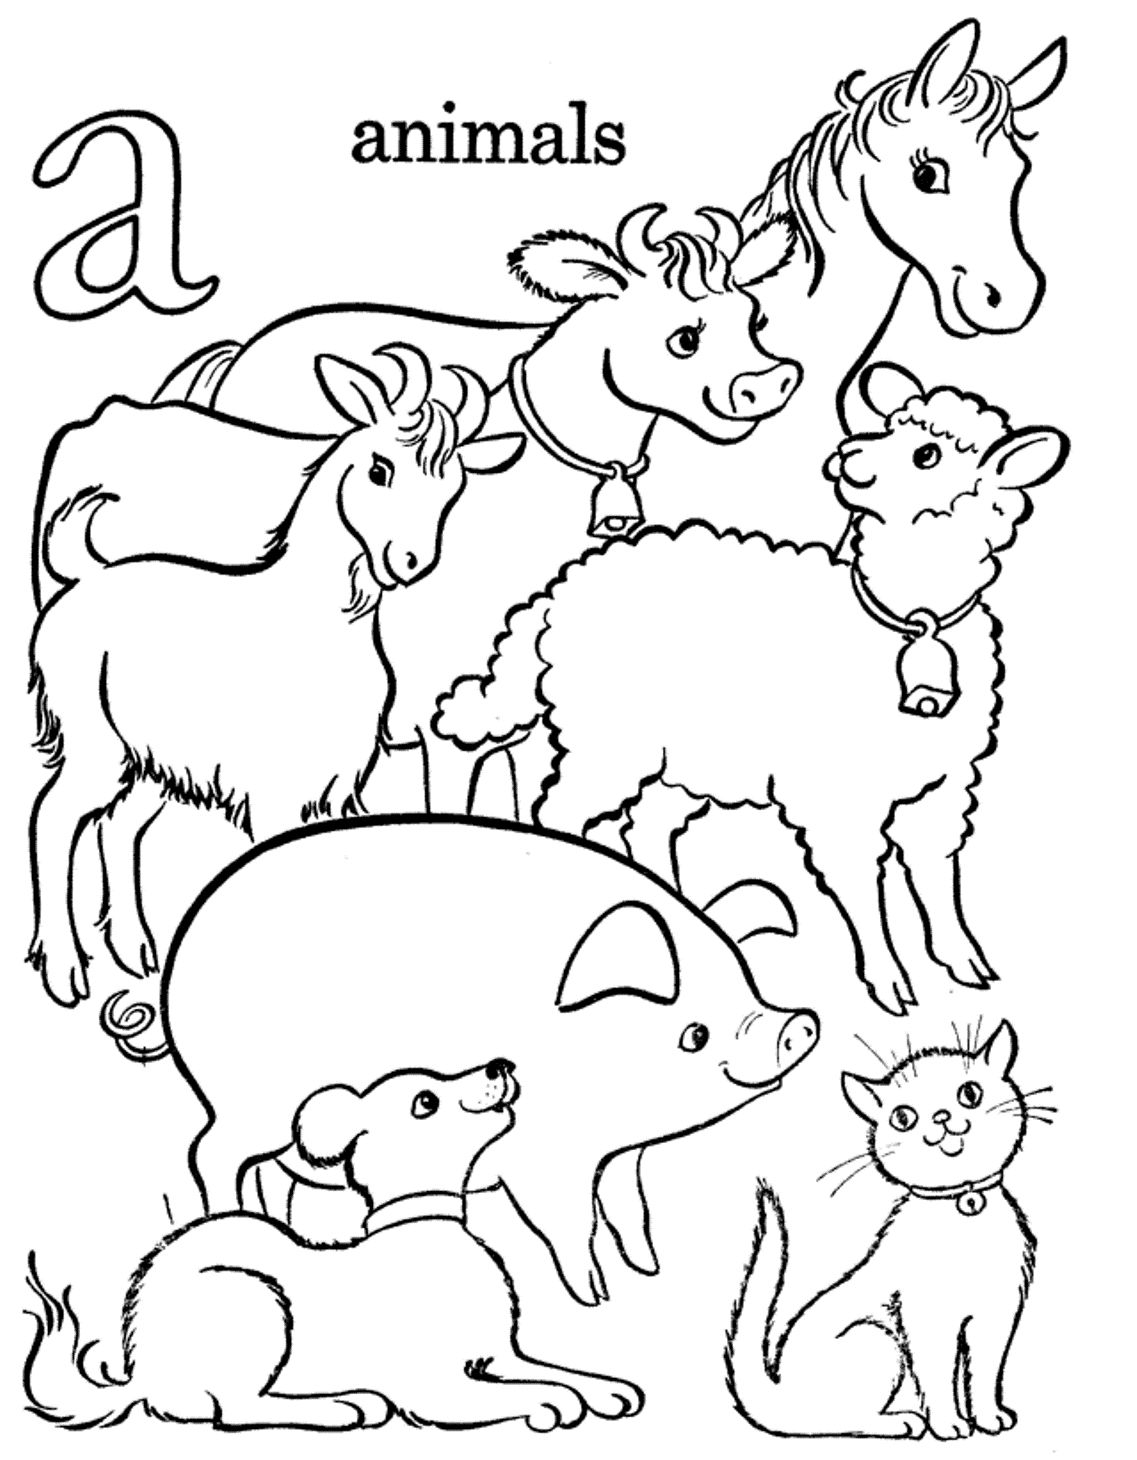 Printable farm animals coloring pages old macdonald had a farm